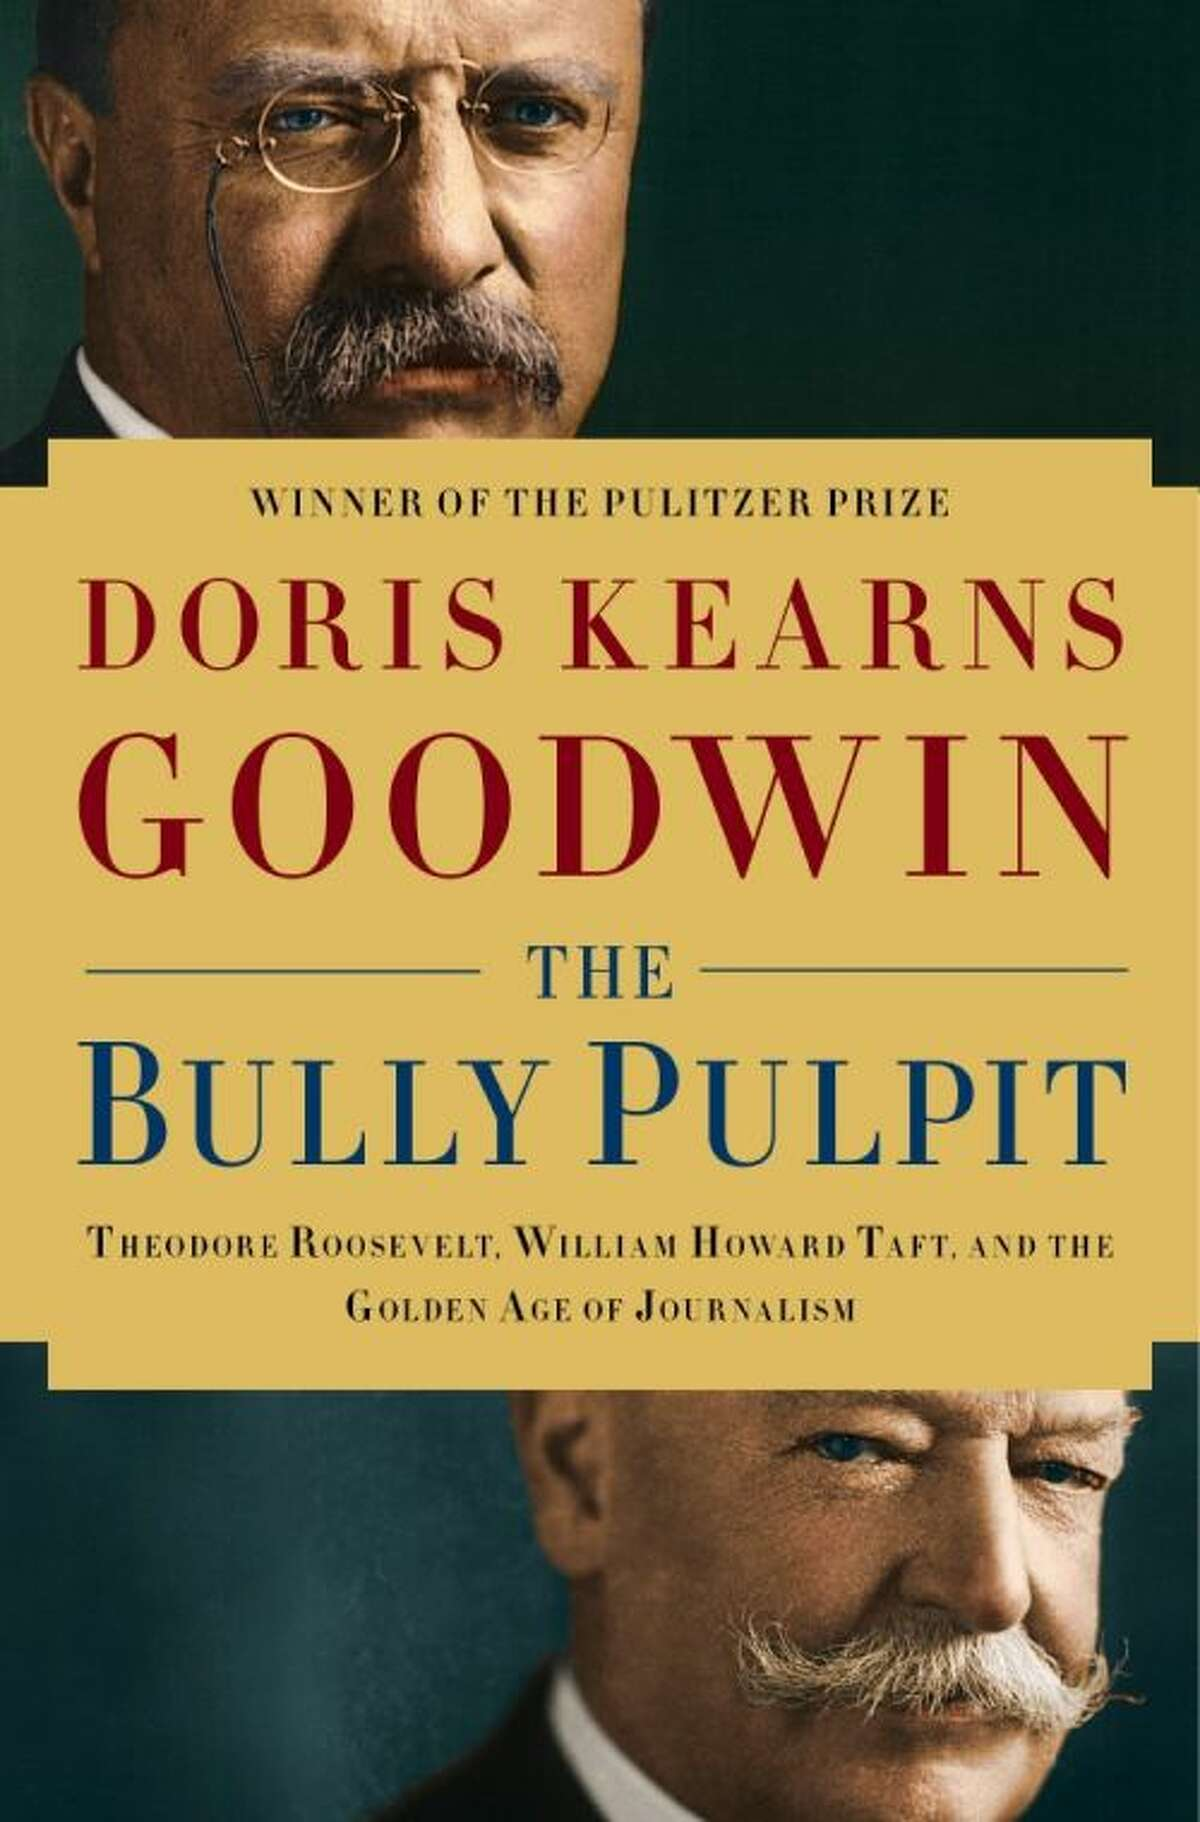 """This book cover image released by Simon & Schuster shows """"The Bully Pulpit: Theodore Roosevelt, William Howard Taft, and the Golden Age of Journalism,"""" by Doris Kearns Goodwin. (AP Photo/Simon & Schuster)"""